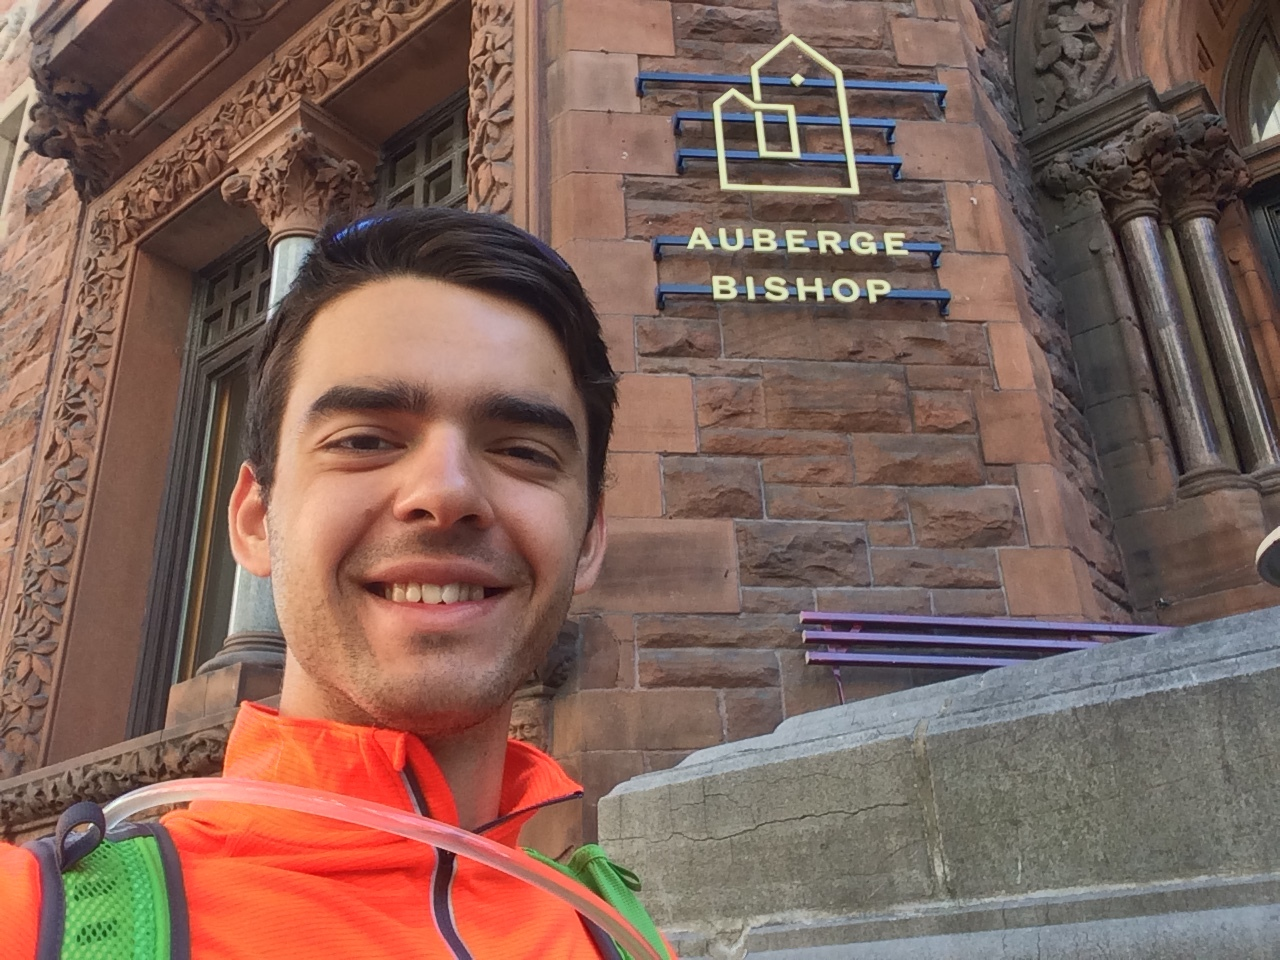 Thank you so much to Auberge Bishop in Montreal for hosting me! This was definitely one of the best hostels I've ever been in, and their unlimited morning bagels and coffee basically sent me to heaven. Please check them out if you're ever in Montreal - thanks again Auberge Bishop for your support!